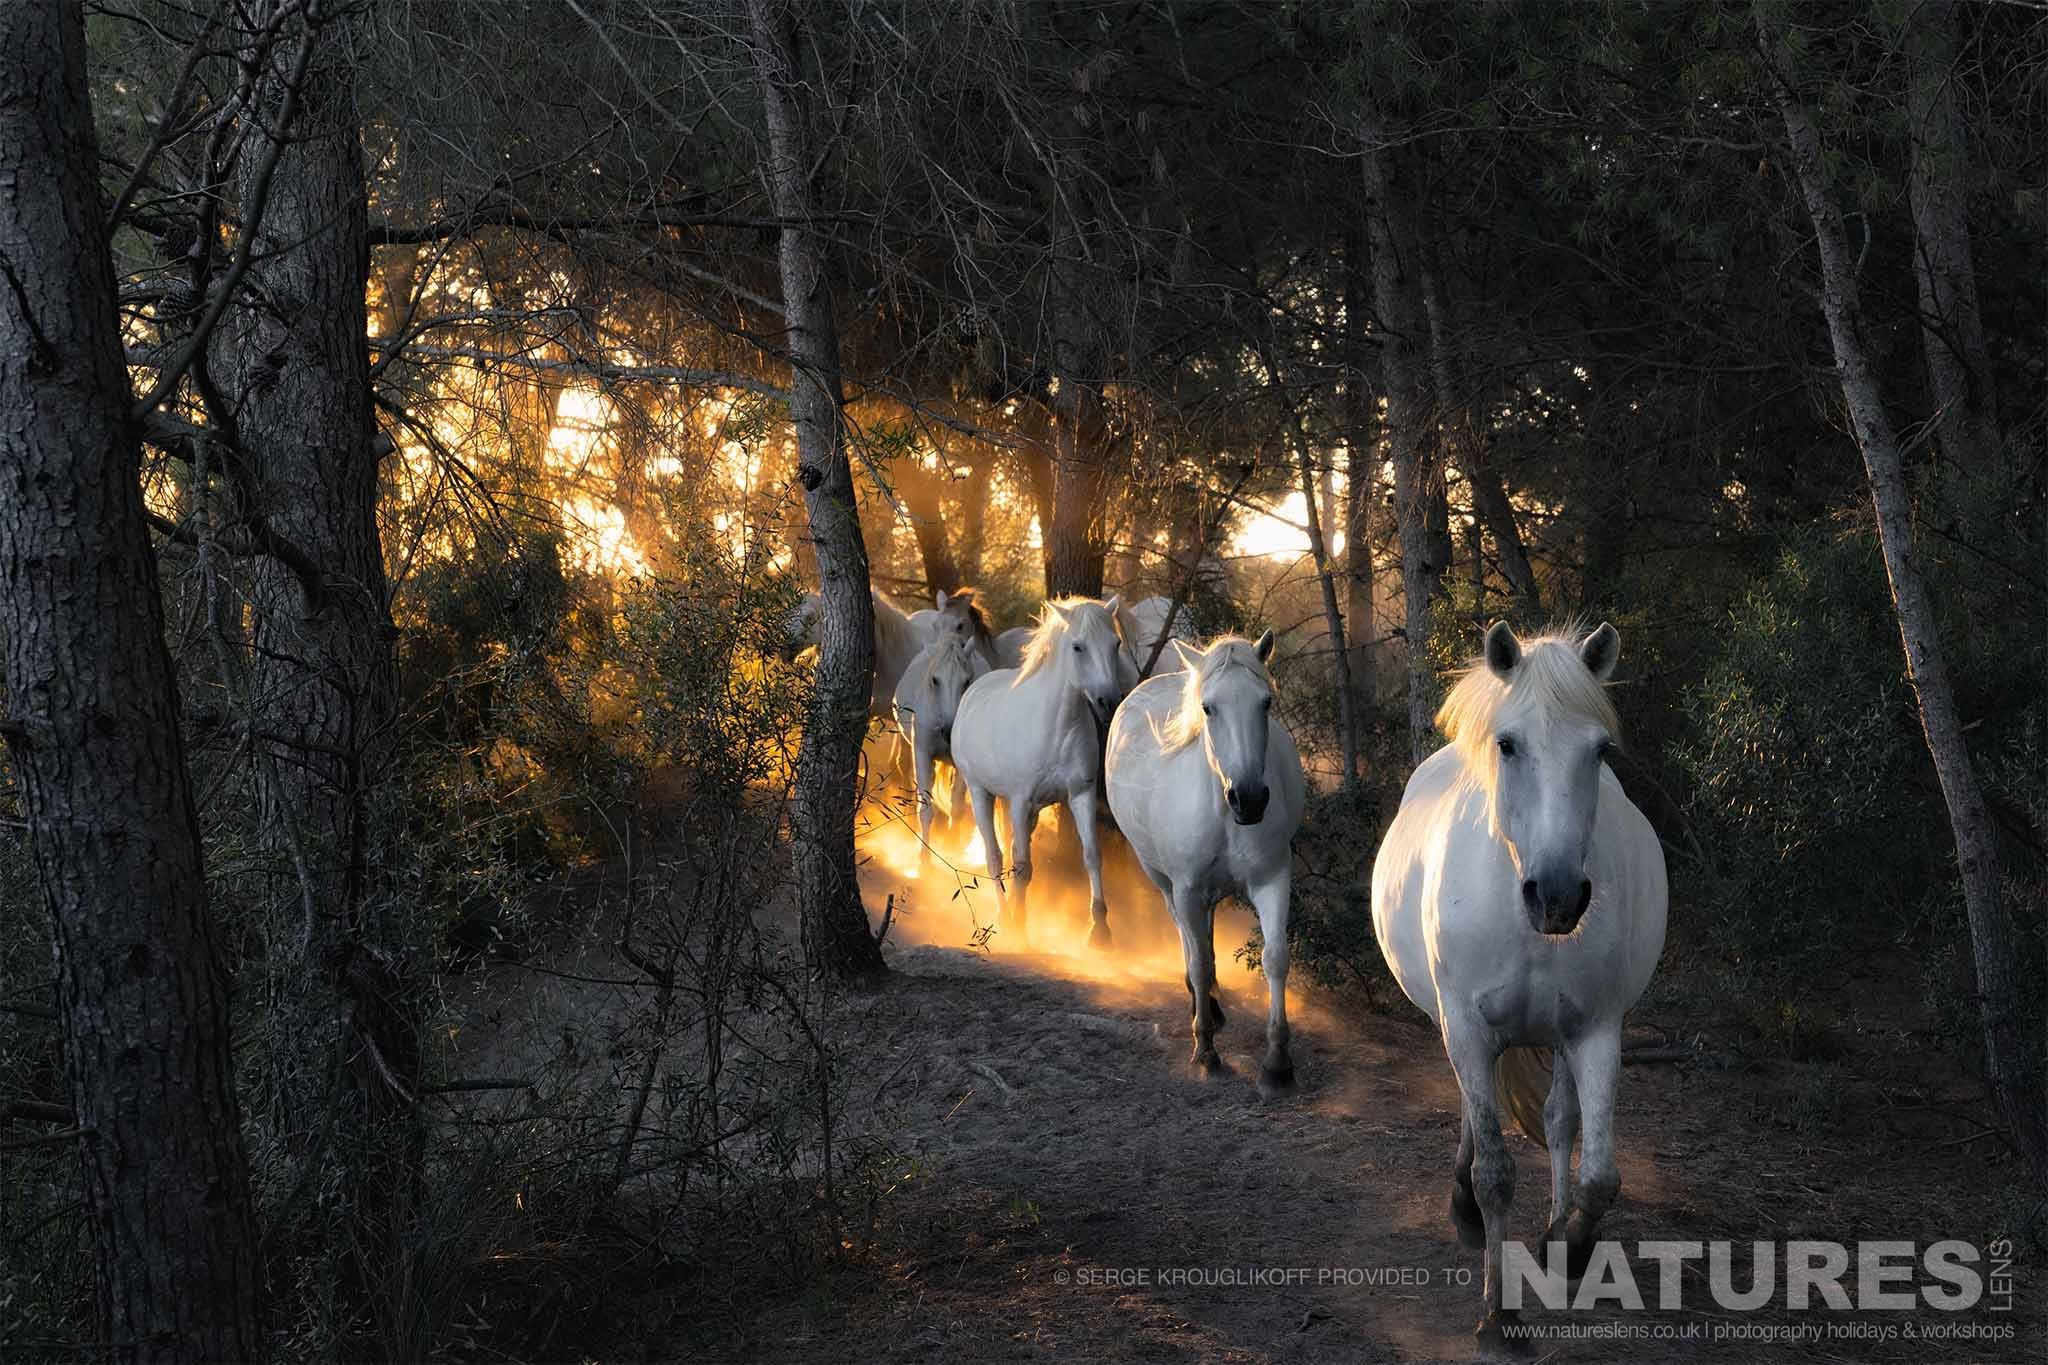 A Group Of The White Horses Of The Camargue Gallops Through Woodland   Image Captured During A White Horses Of The Camargue Photography Holiday